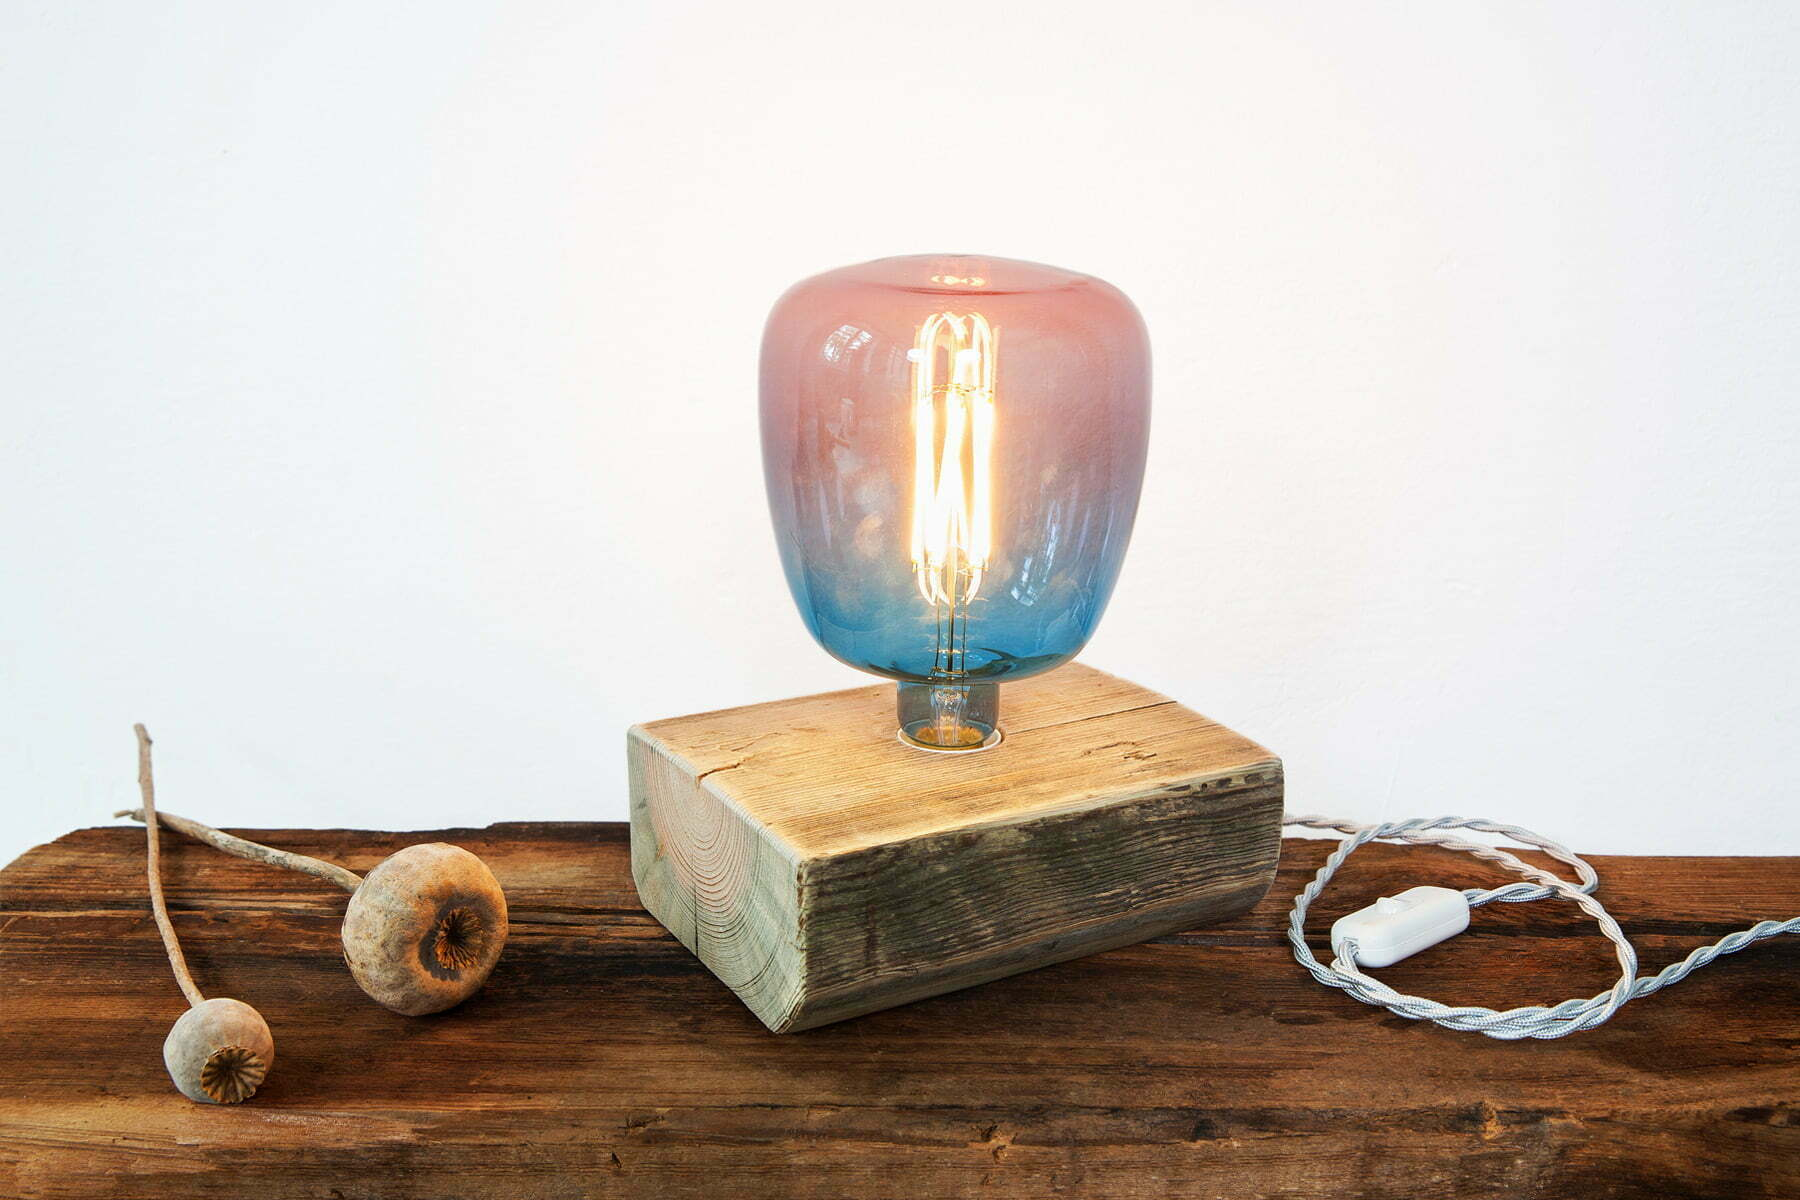 UpCycle-Berlin-Lampe-FIREWOOD-KLOTZ-FLACH-Multicolor-Medium